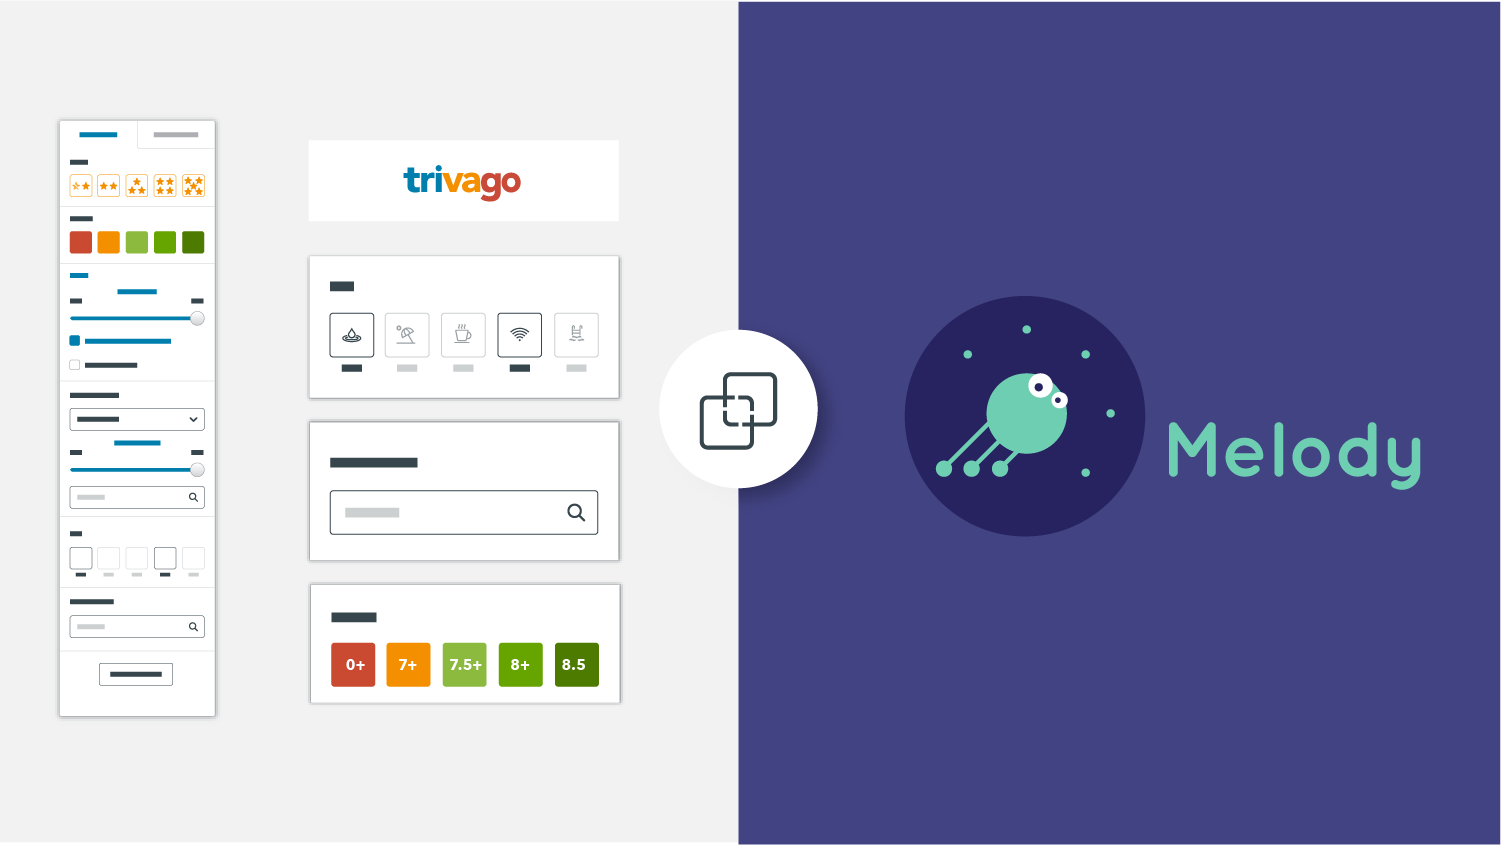 Read trivago just made filtering faster and more accessible, but why and how?